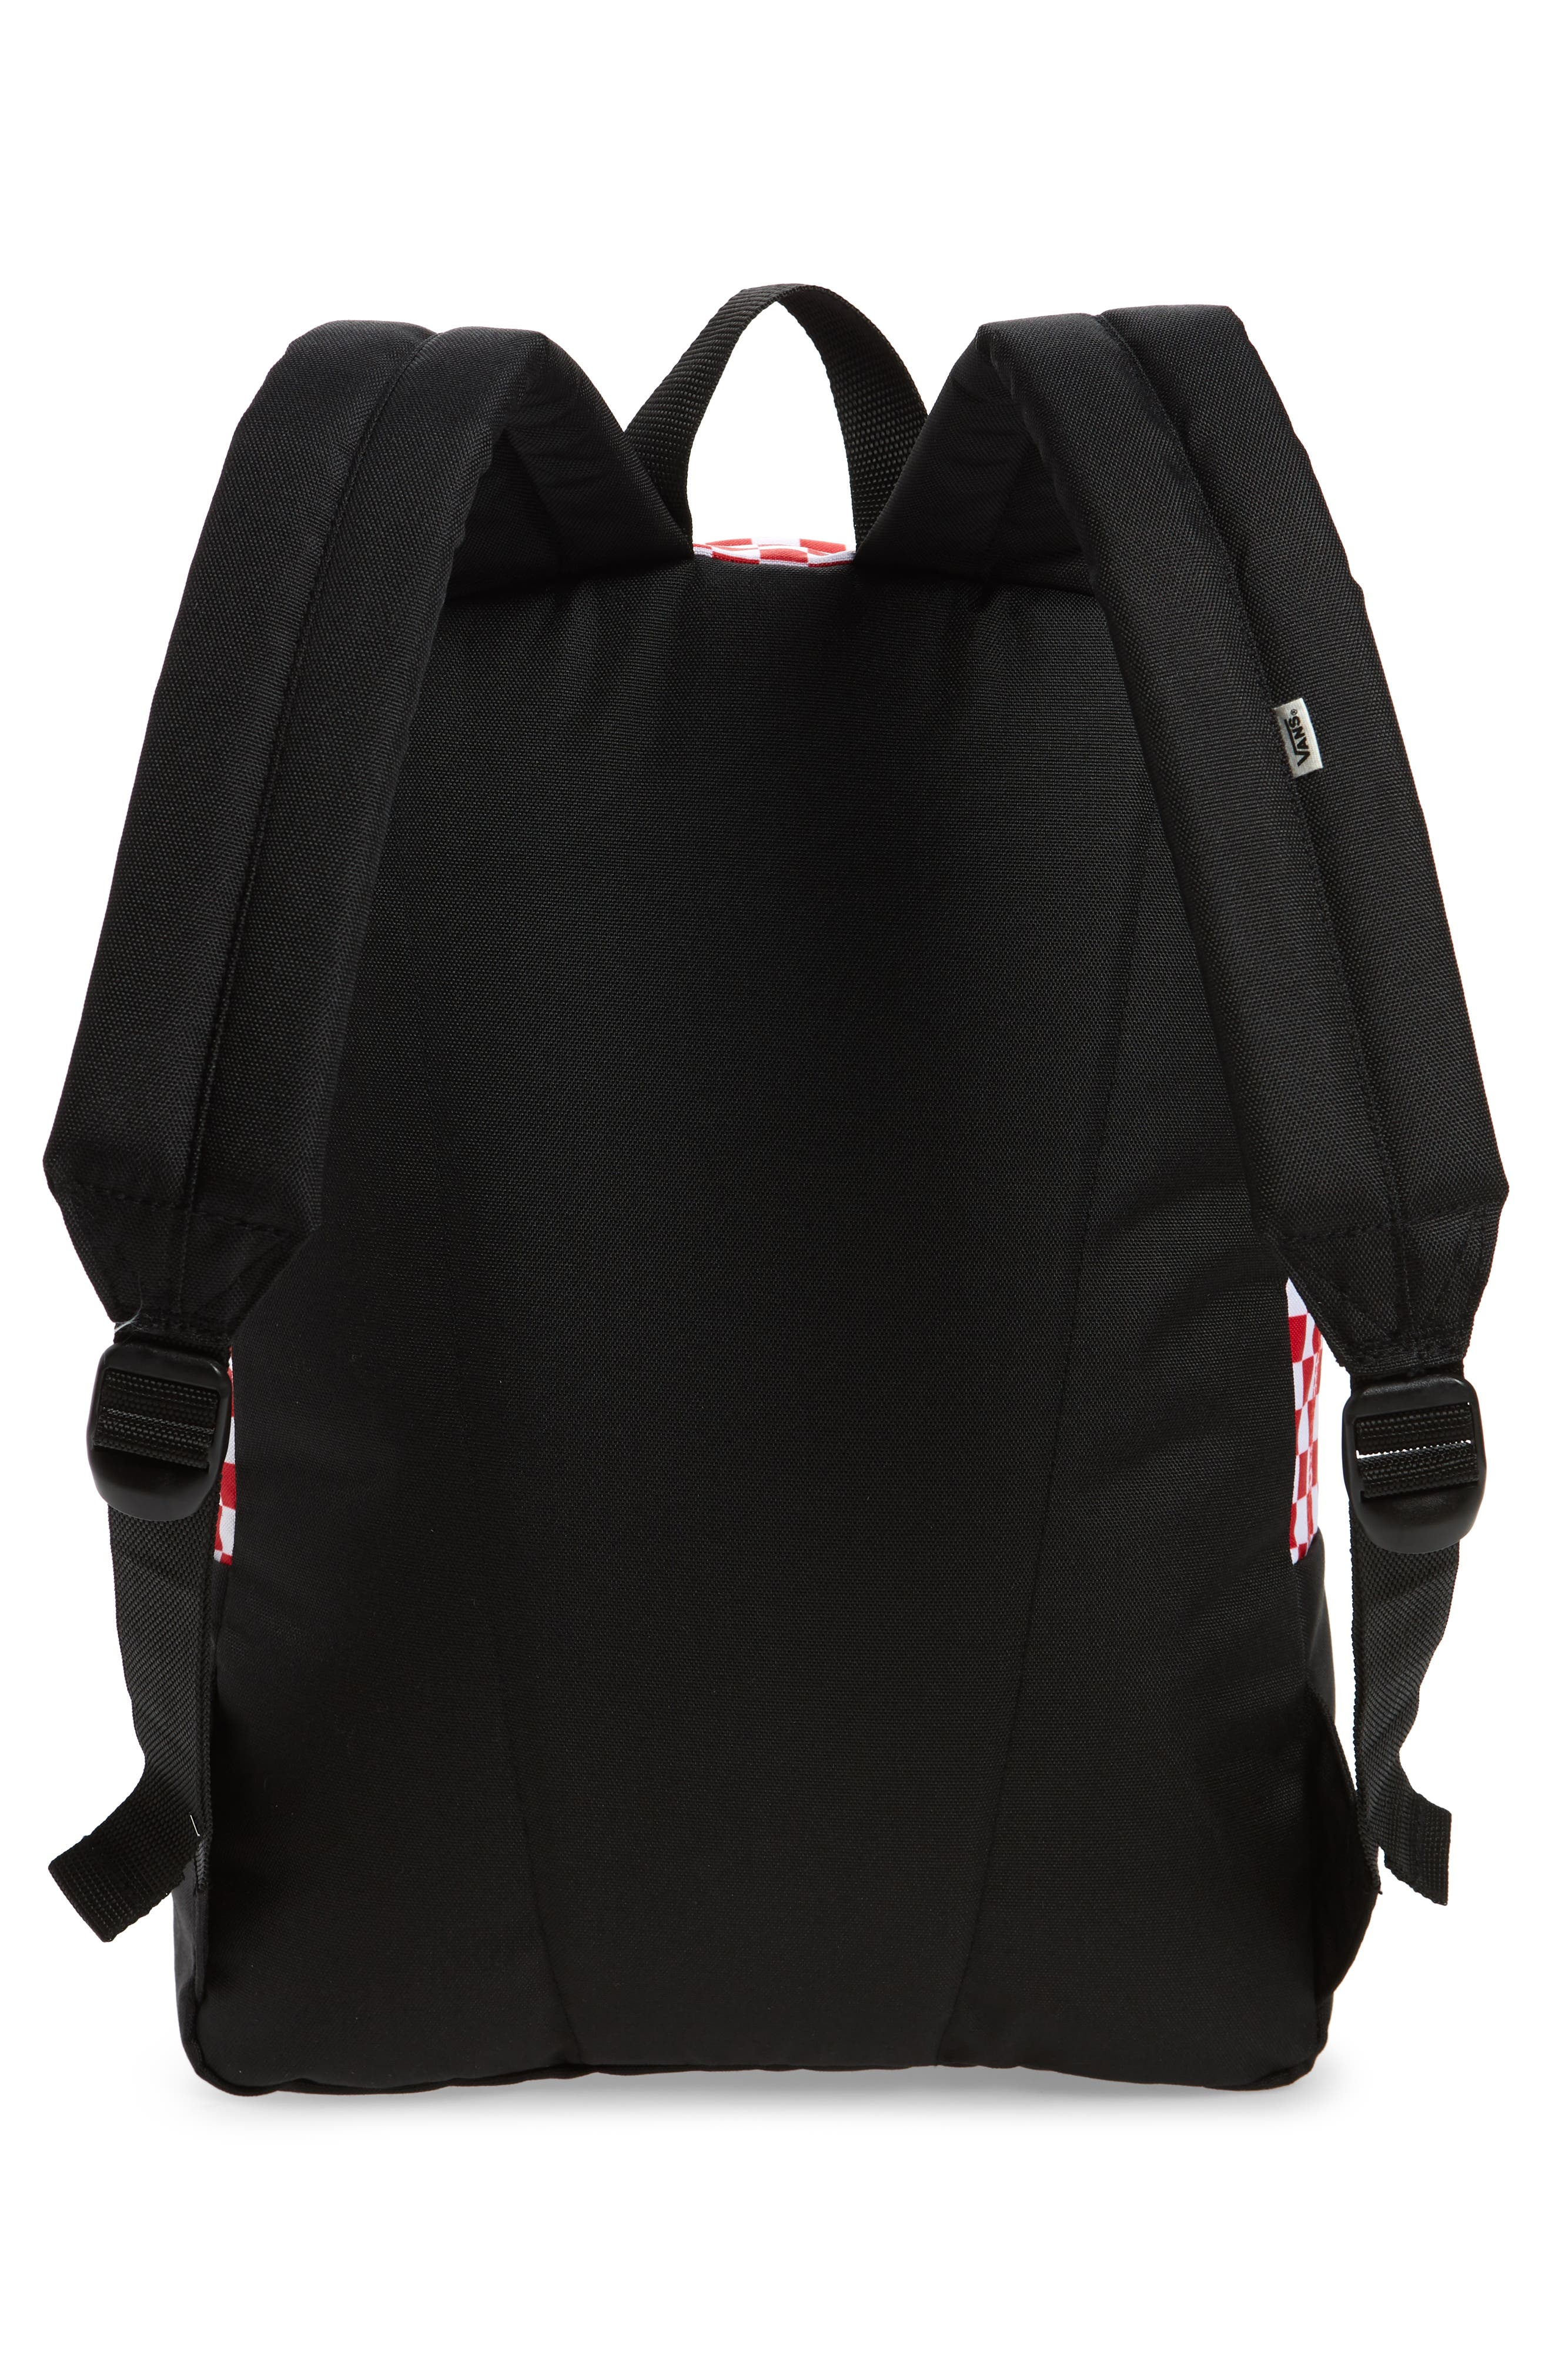 x Marvel<sup>®</sup> Spidey Realm Backpack,                             Alternate thumbnail 2, color,                             Black/ Racing Red